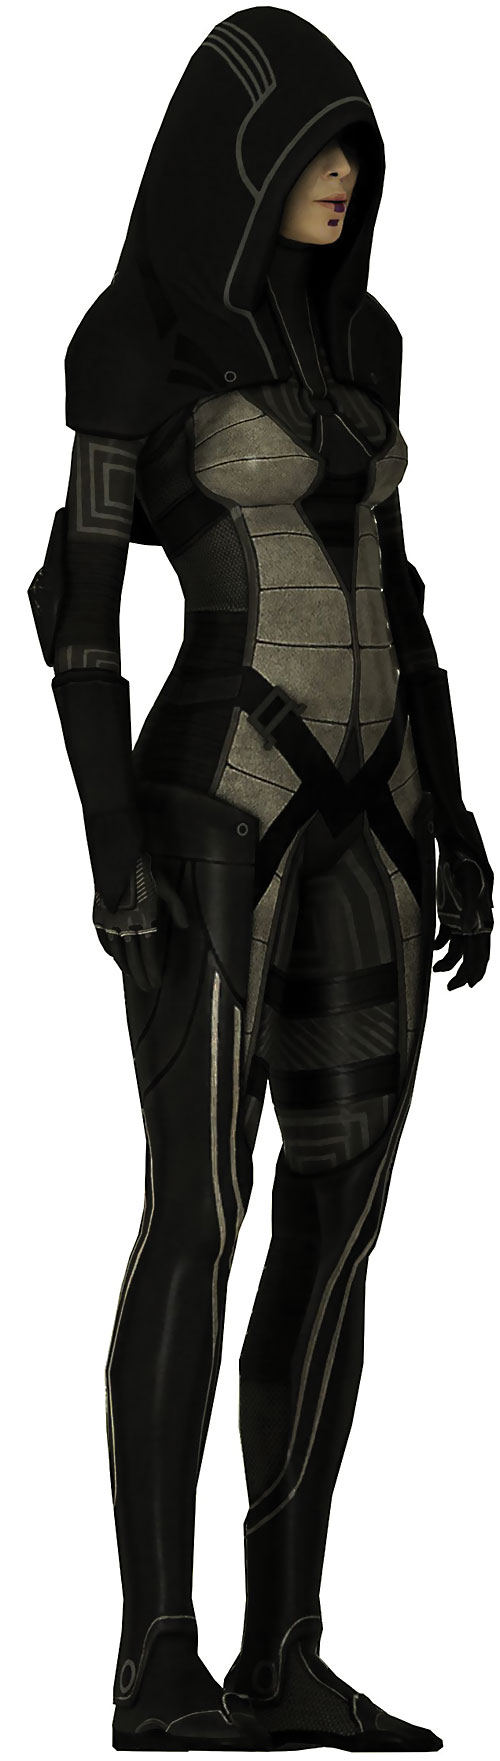 Kasumi Goto (Mass Effect) character model